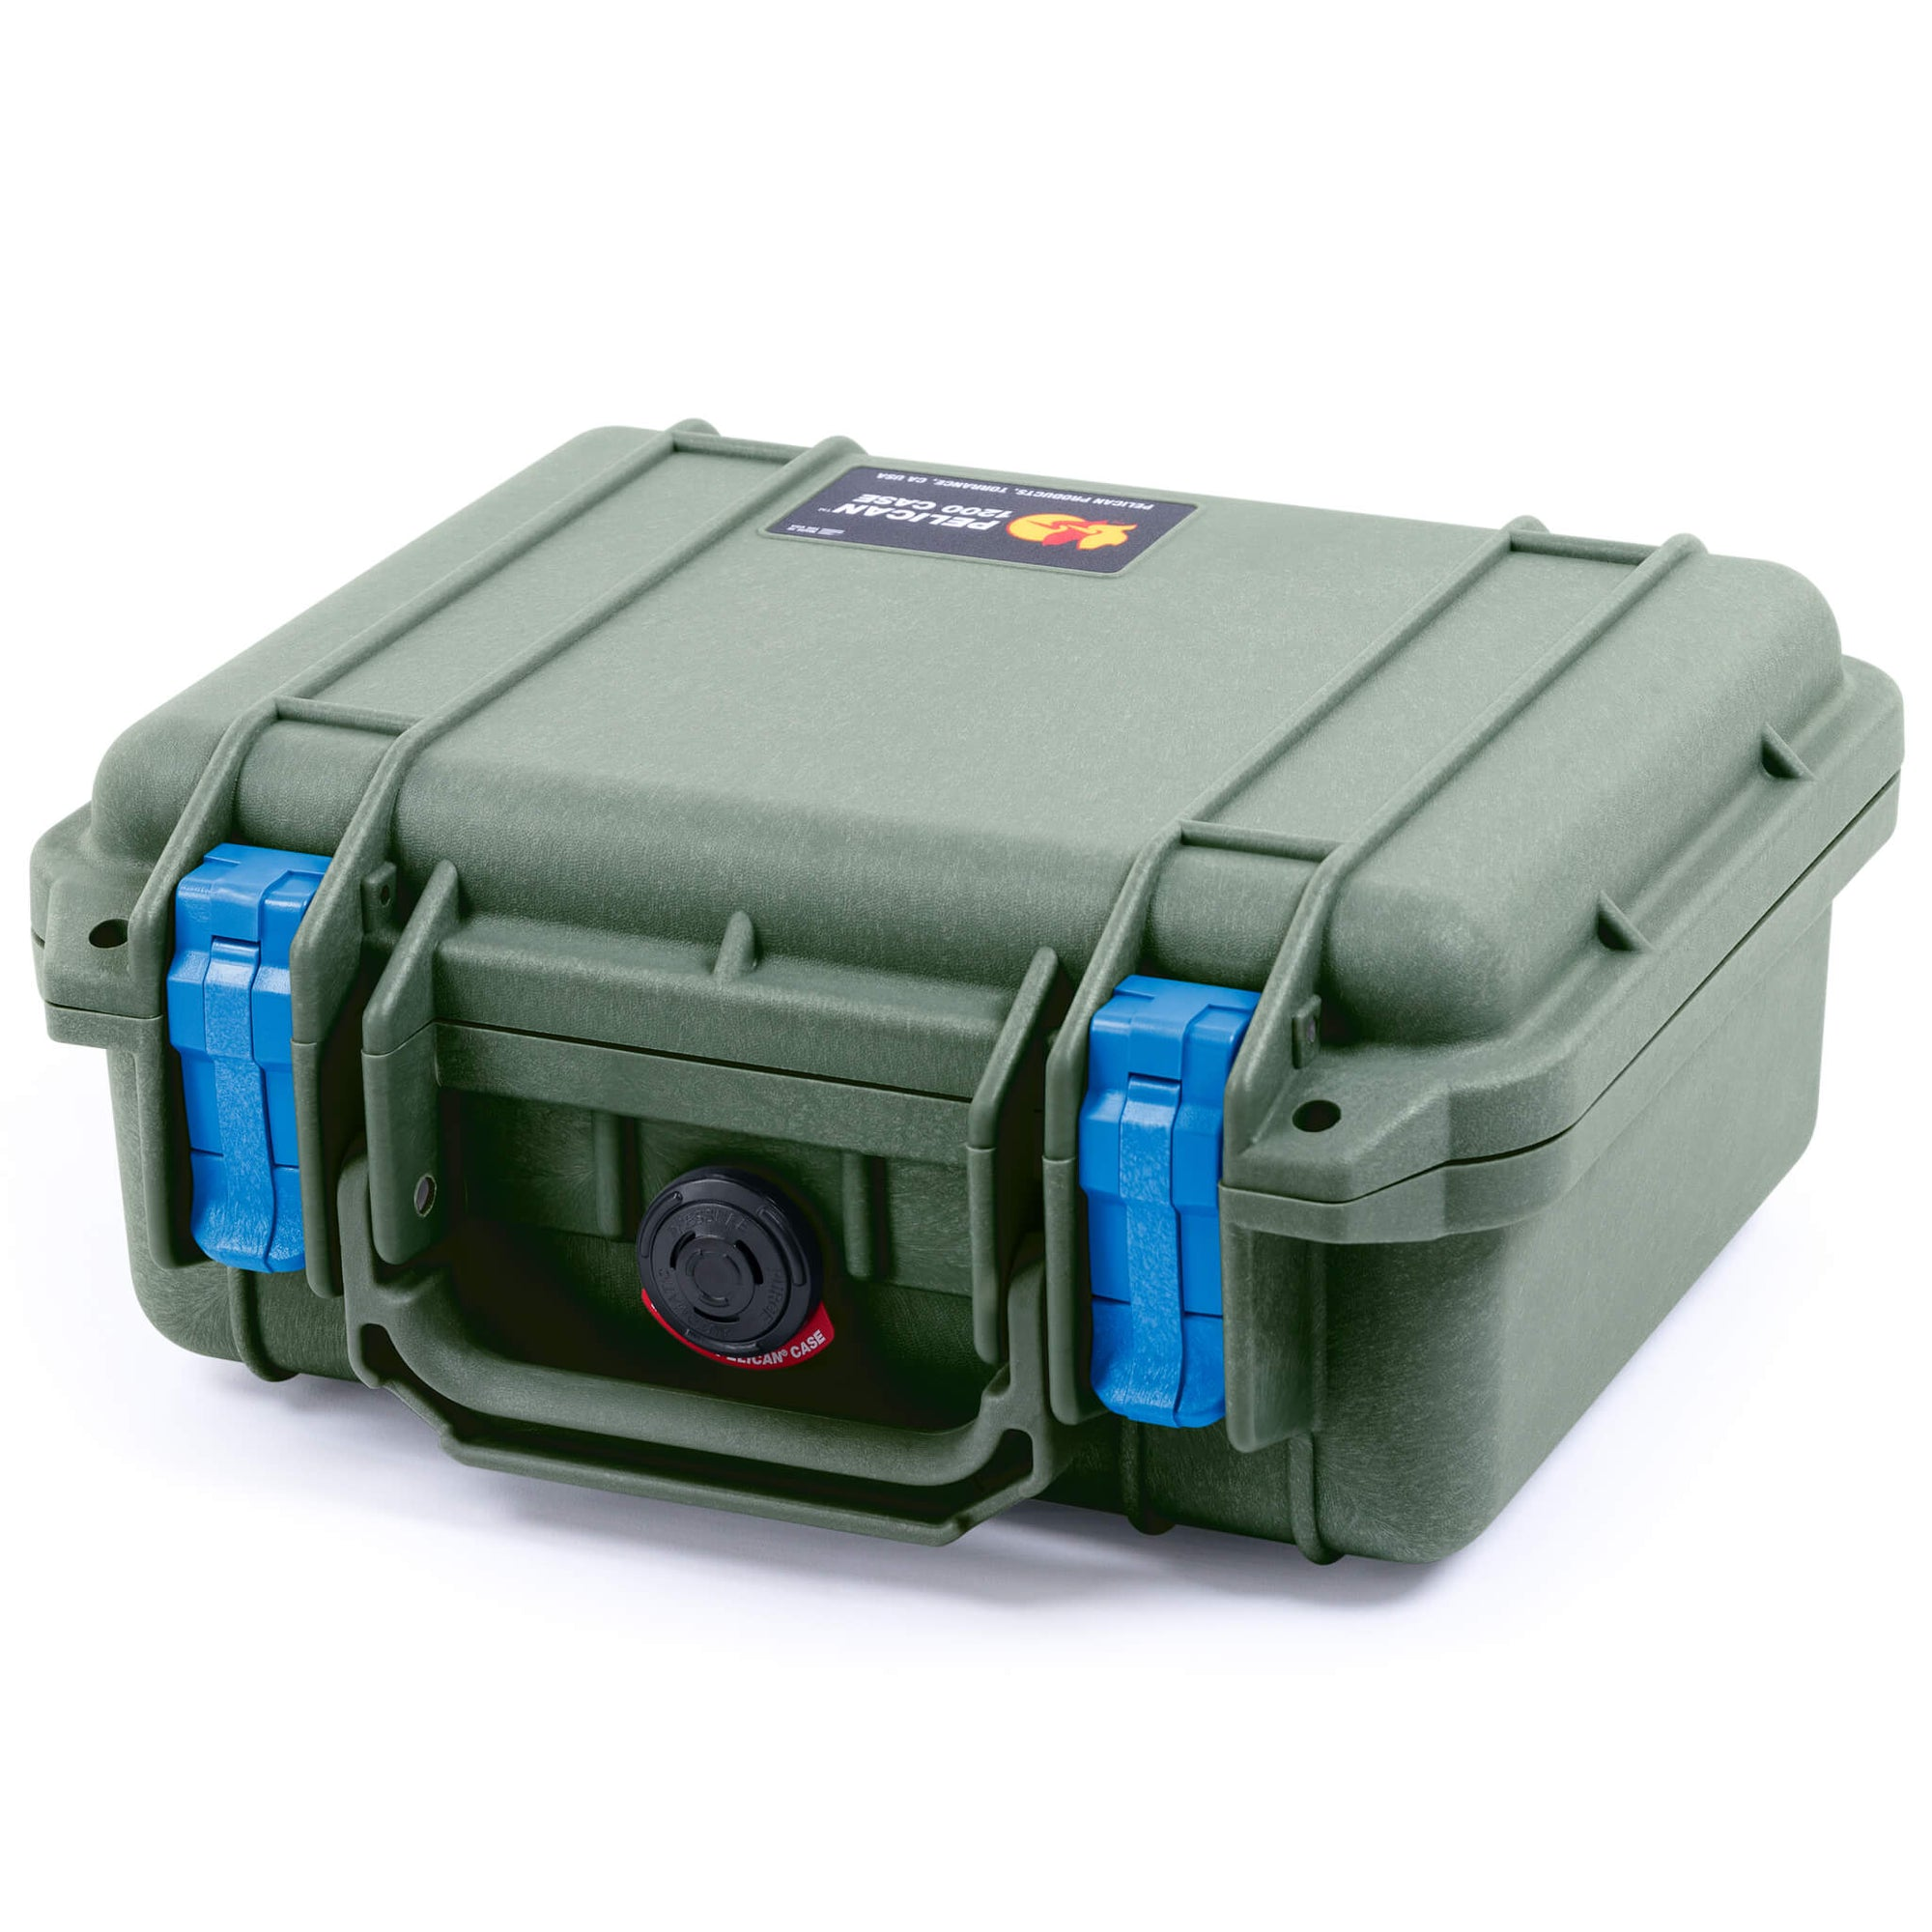 Pelican 1200 Case, OD Green with Blue Handle & Latches - Pelican Color Case